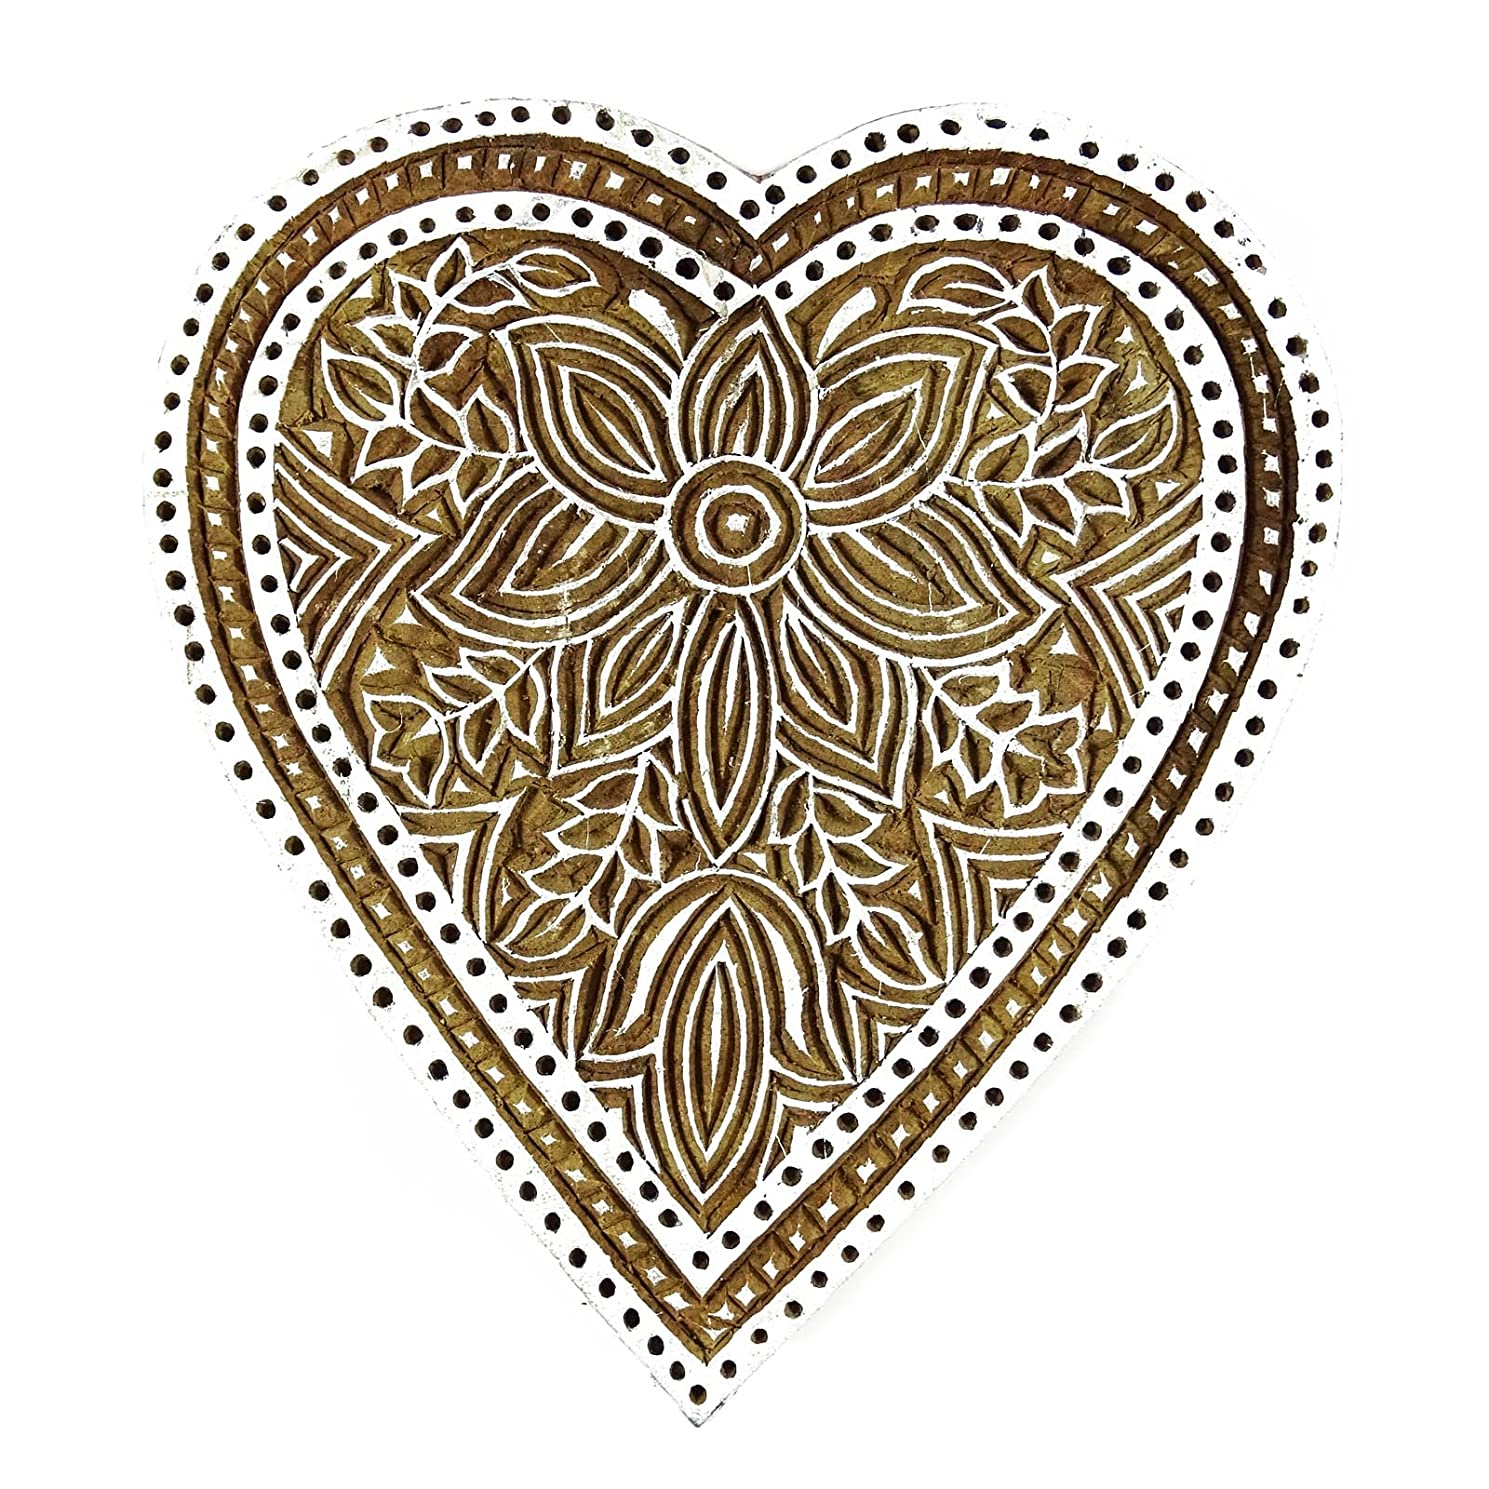 Handcarved Heart Shape Floral Printing Block Wooden Pottery Stamps Blockprint